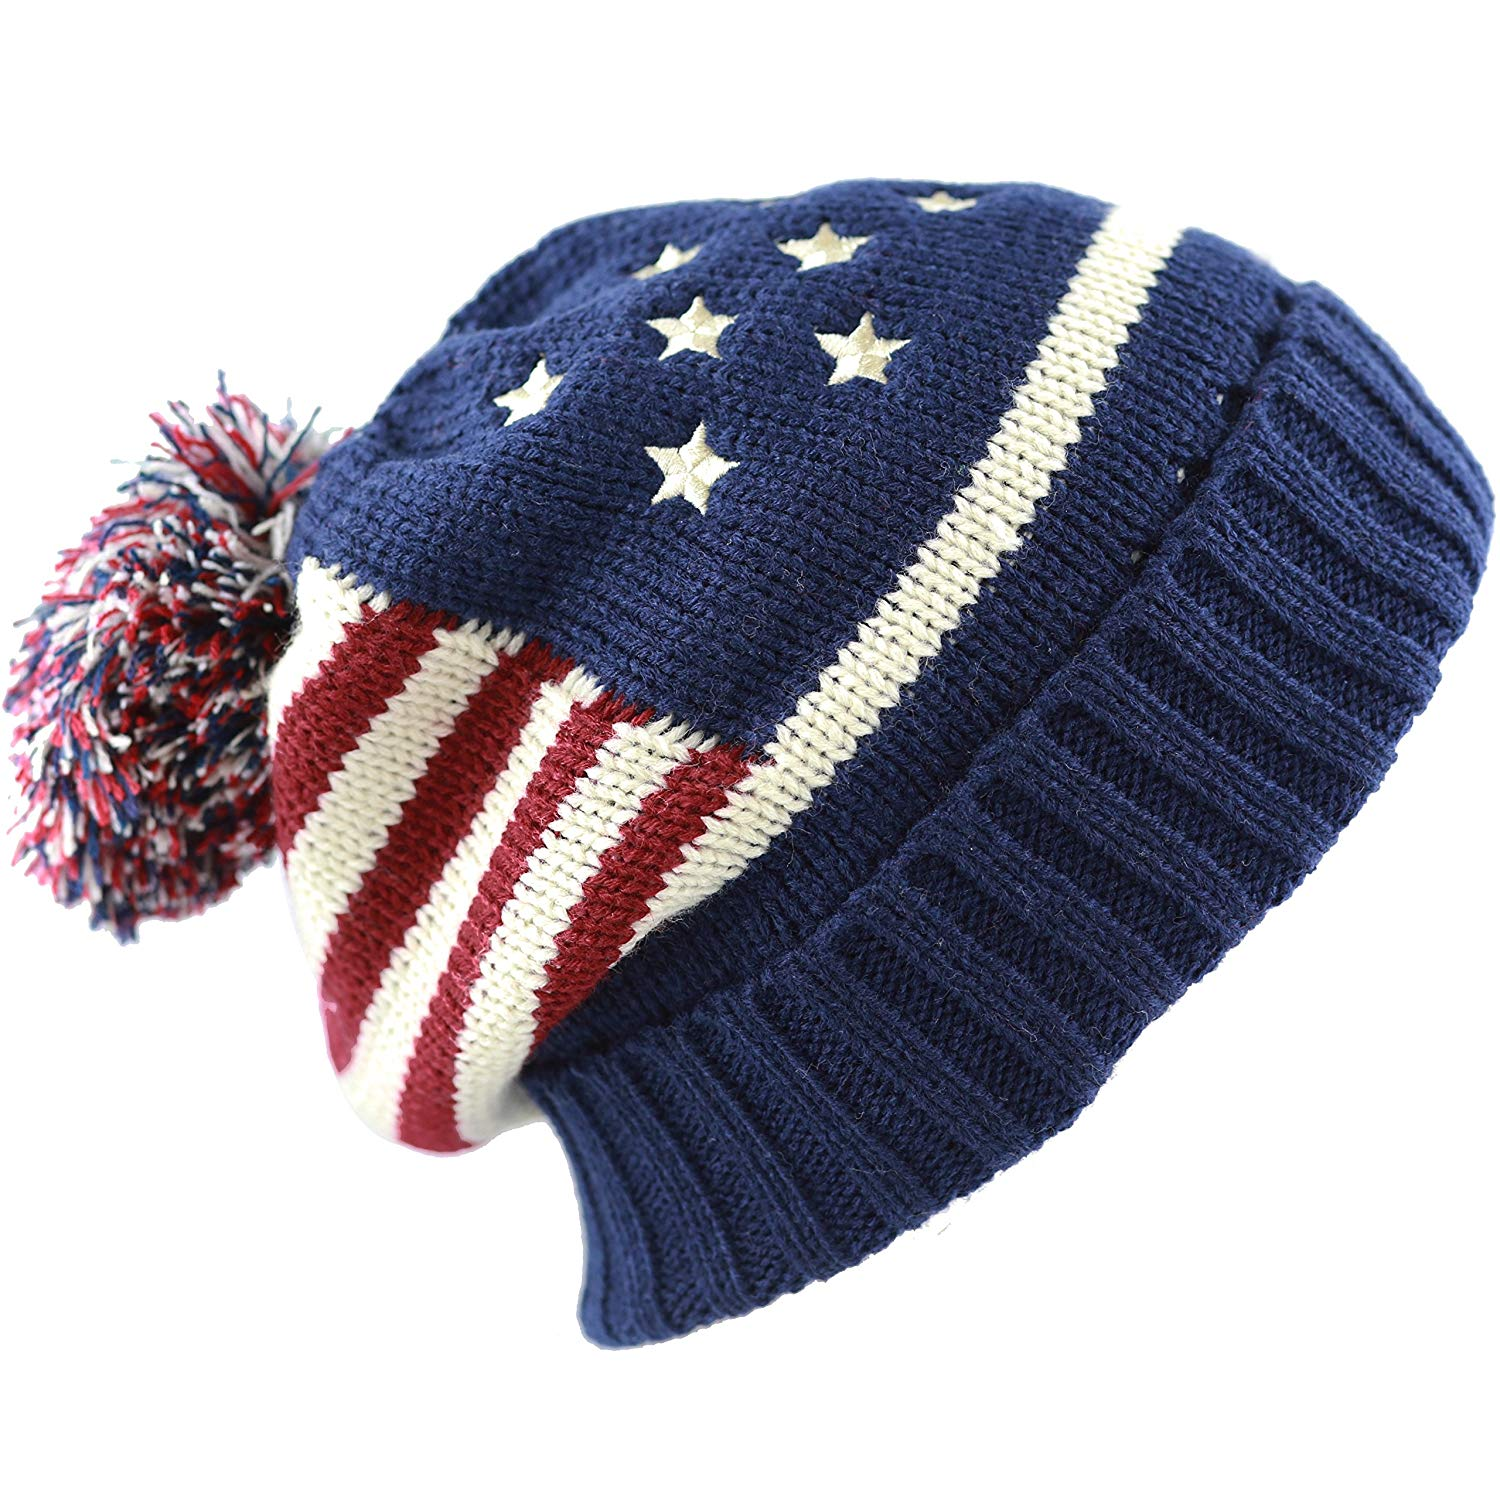 34f3204d Get Quotations · The Hat Depot 900 American Flag Thick Knit Beanie with Pom  Pom Winter Hat -1Color